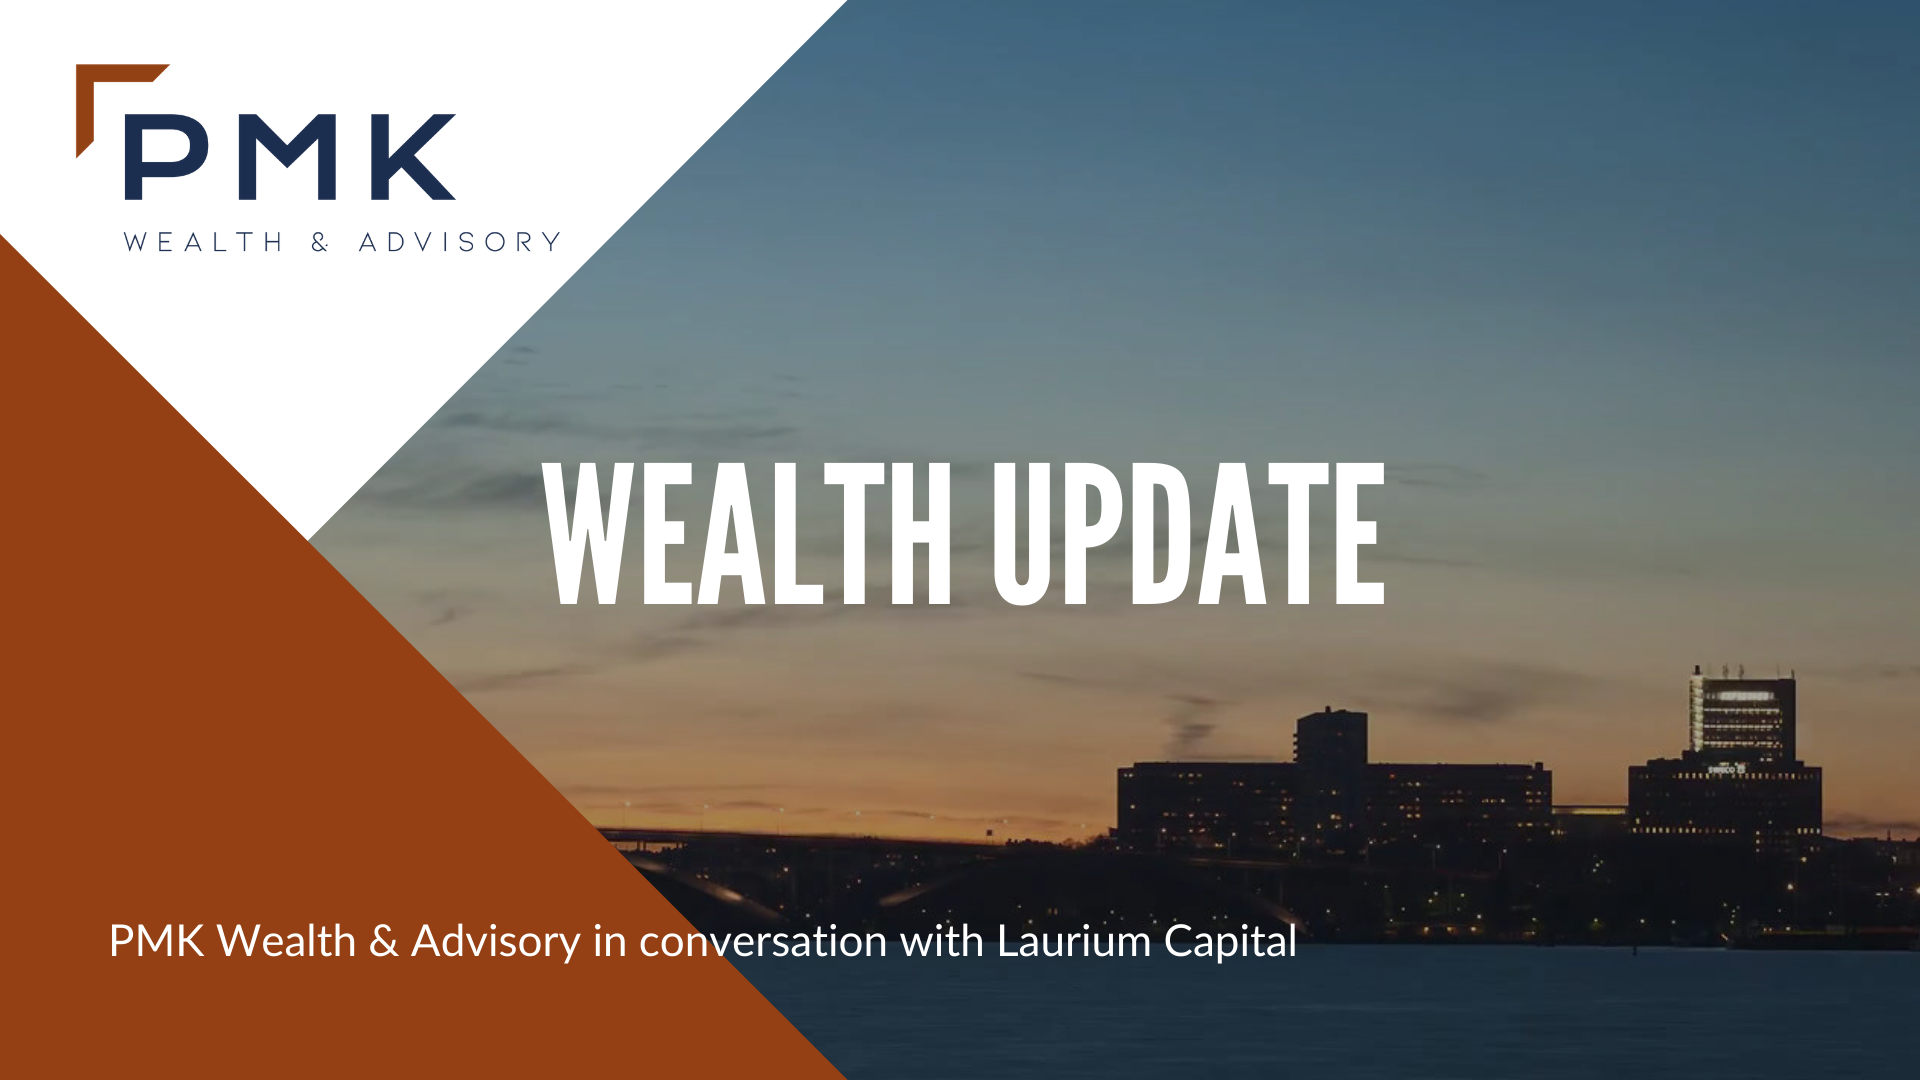 PMK Wealth & Advisory in conversation with Laurium Capital